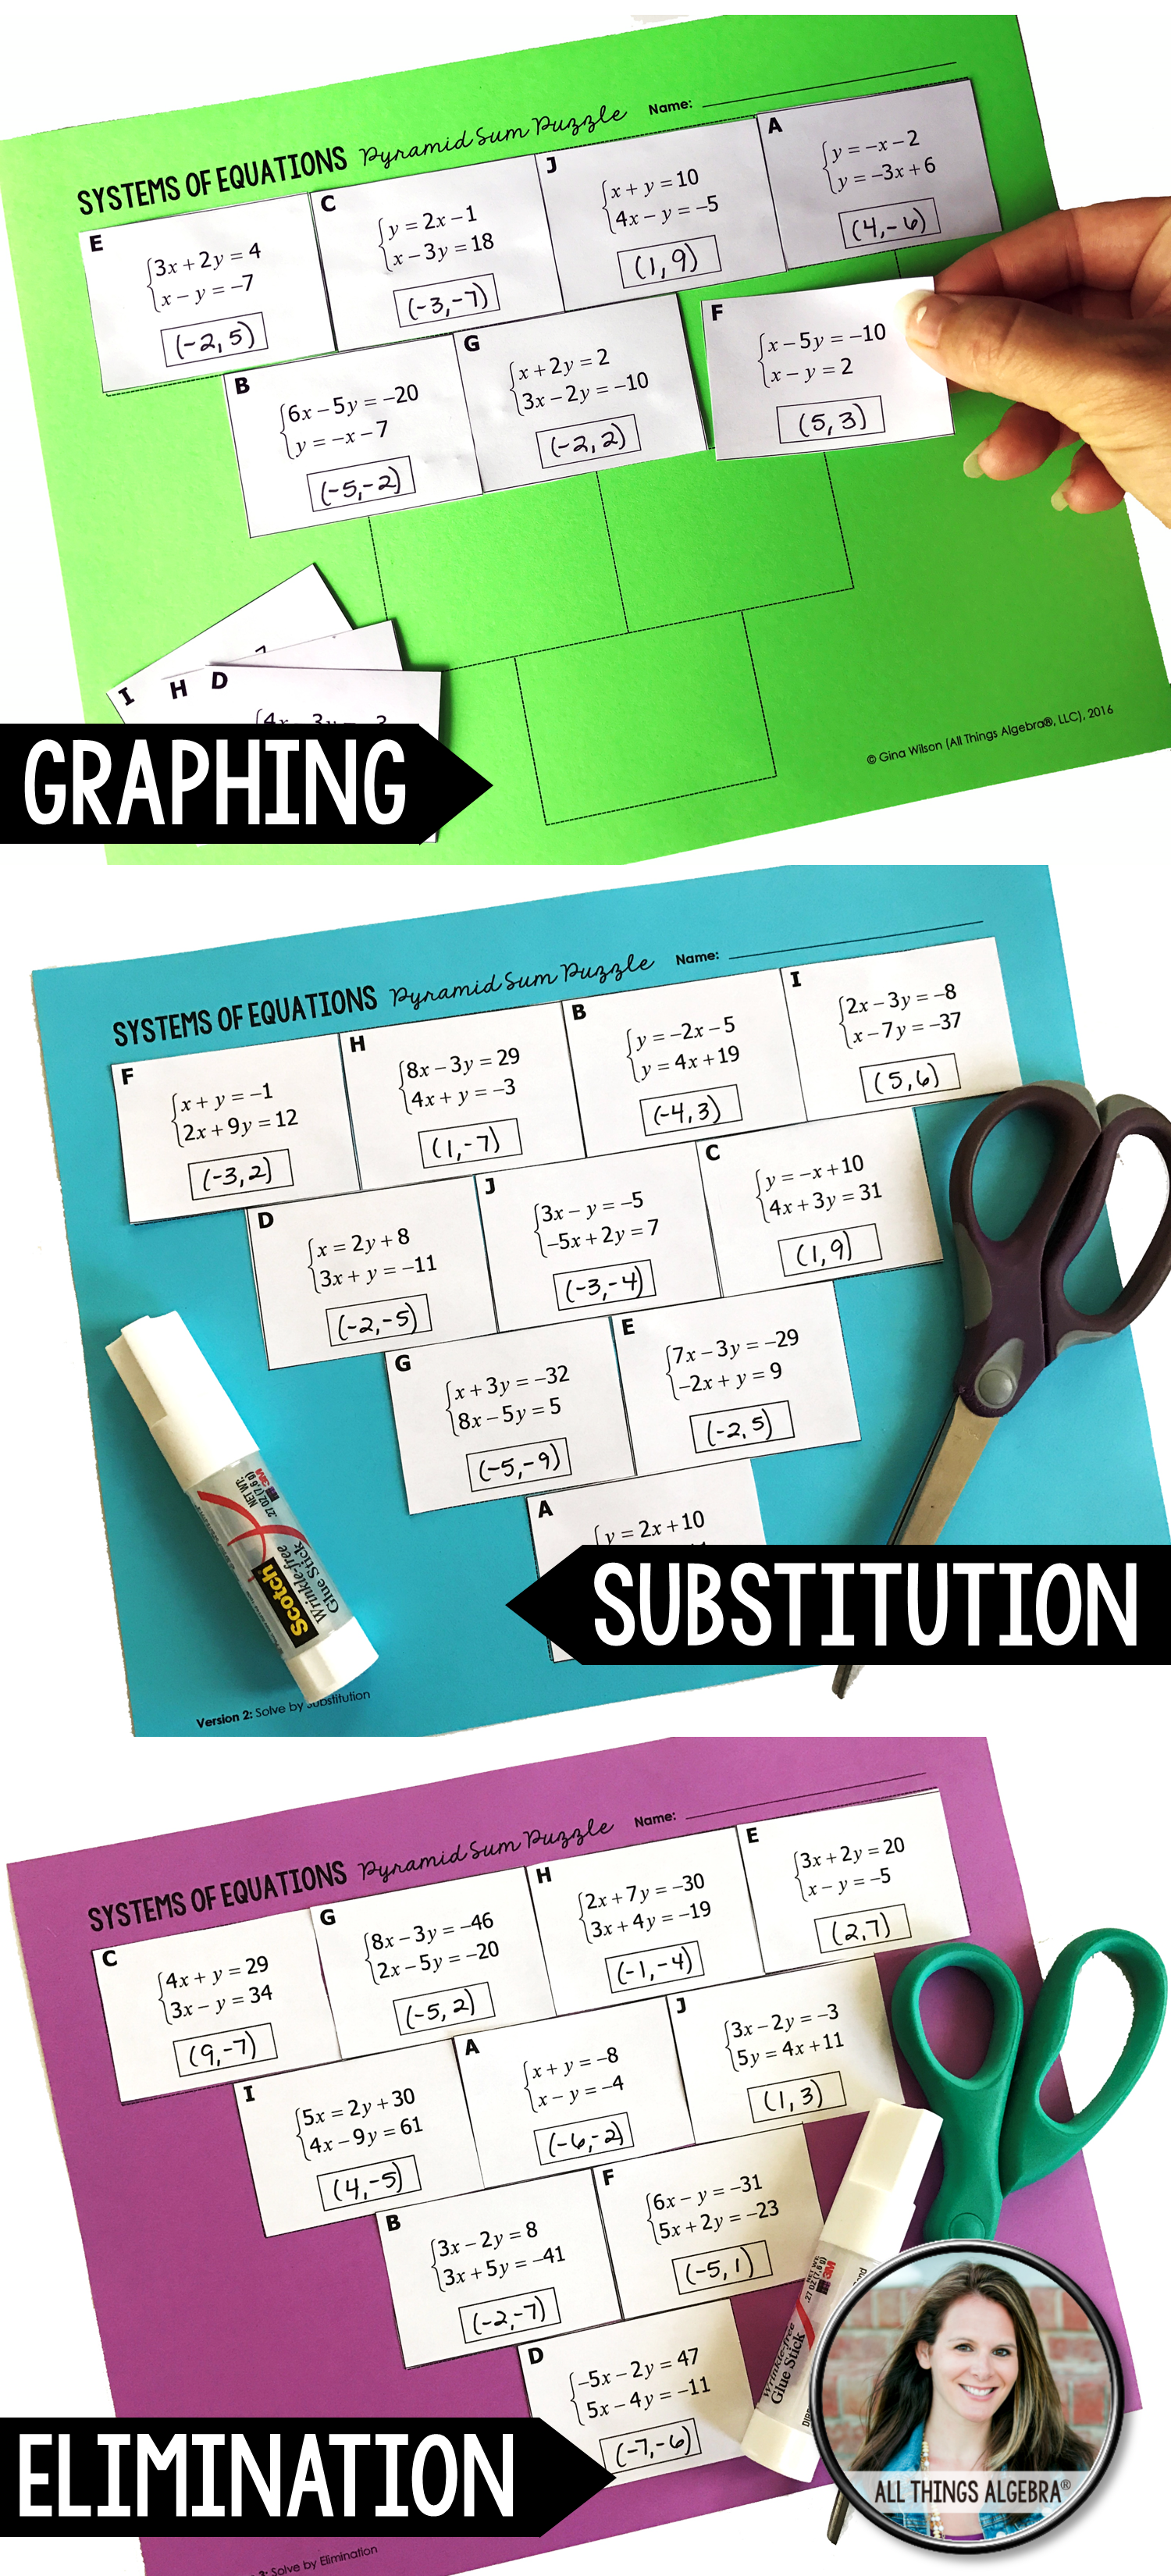 worksheet Equations Puzzle Worksheet systems of equations pyramid sum puzzles 3 included included